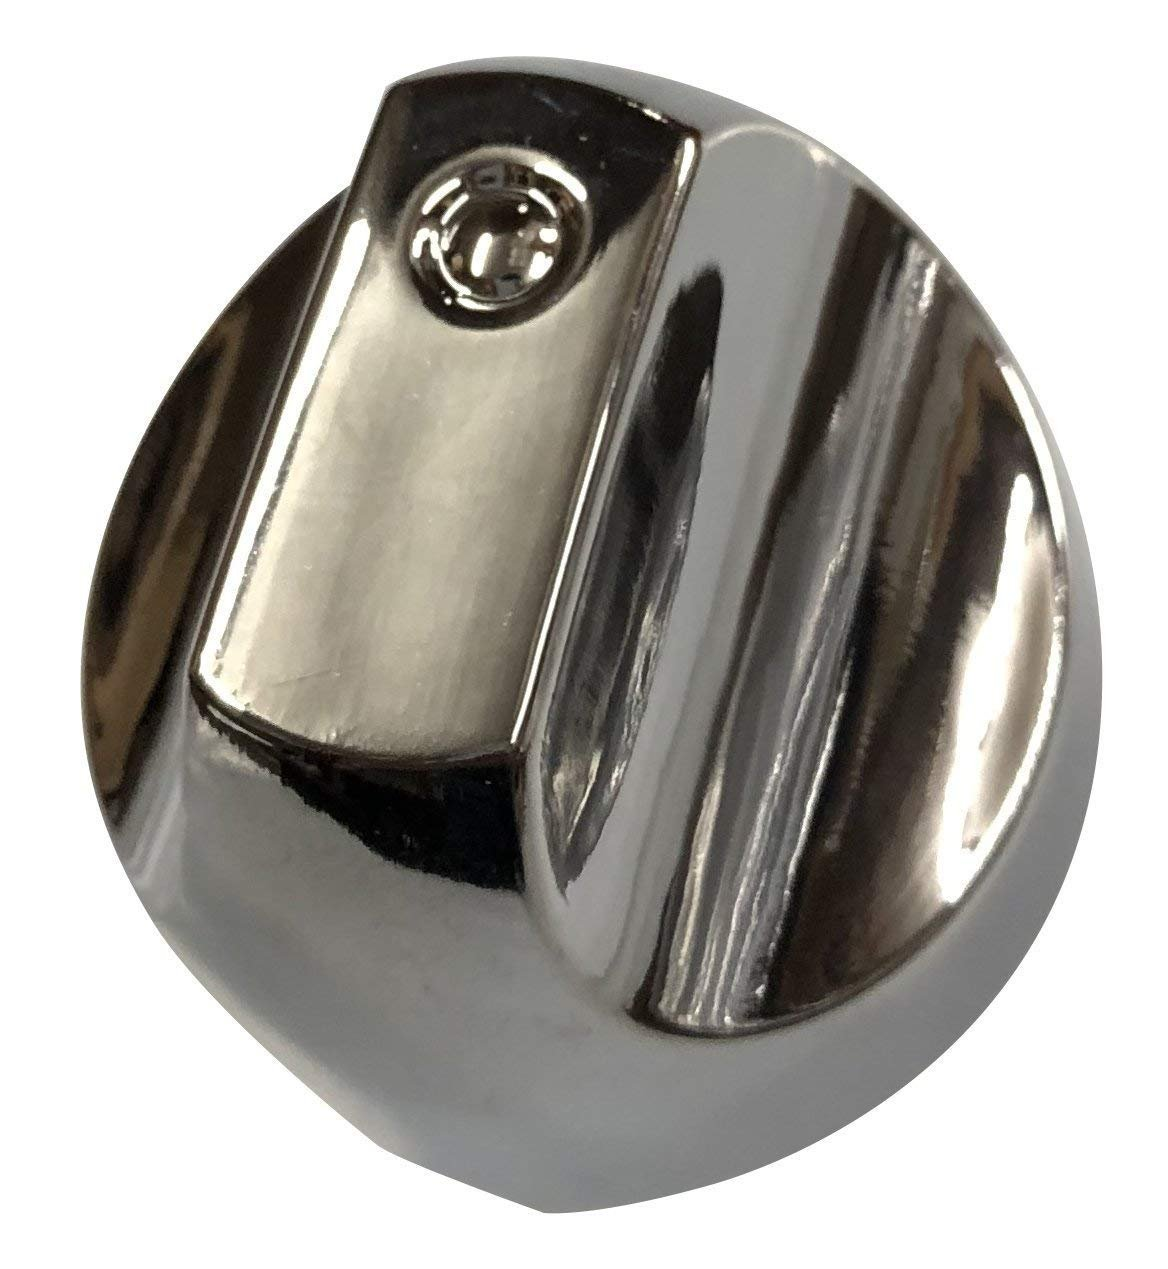 WB03X25889 Knob for General Electric Stove/Range